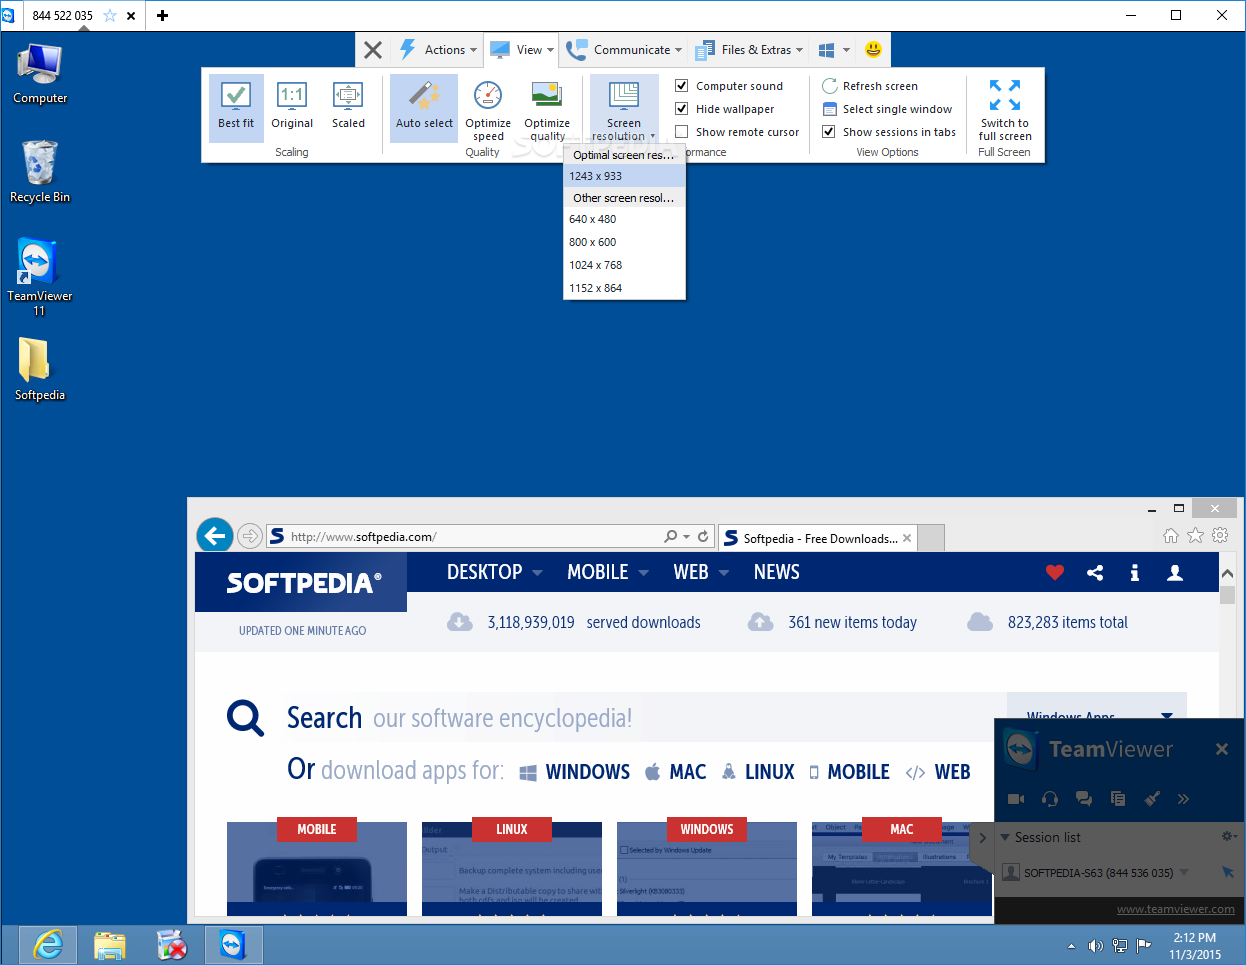 Download TeamViewer Portable 14 5 5819 0